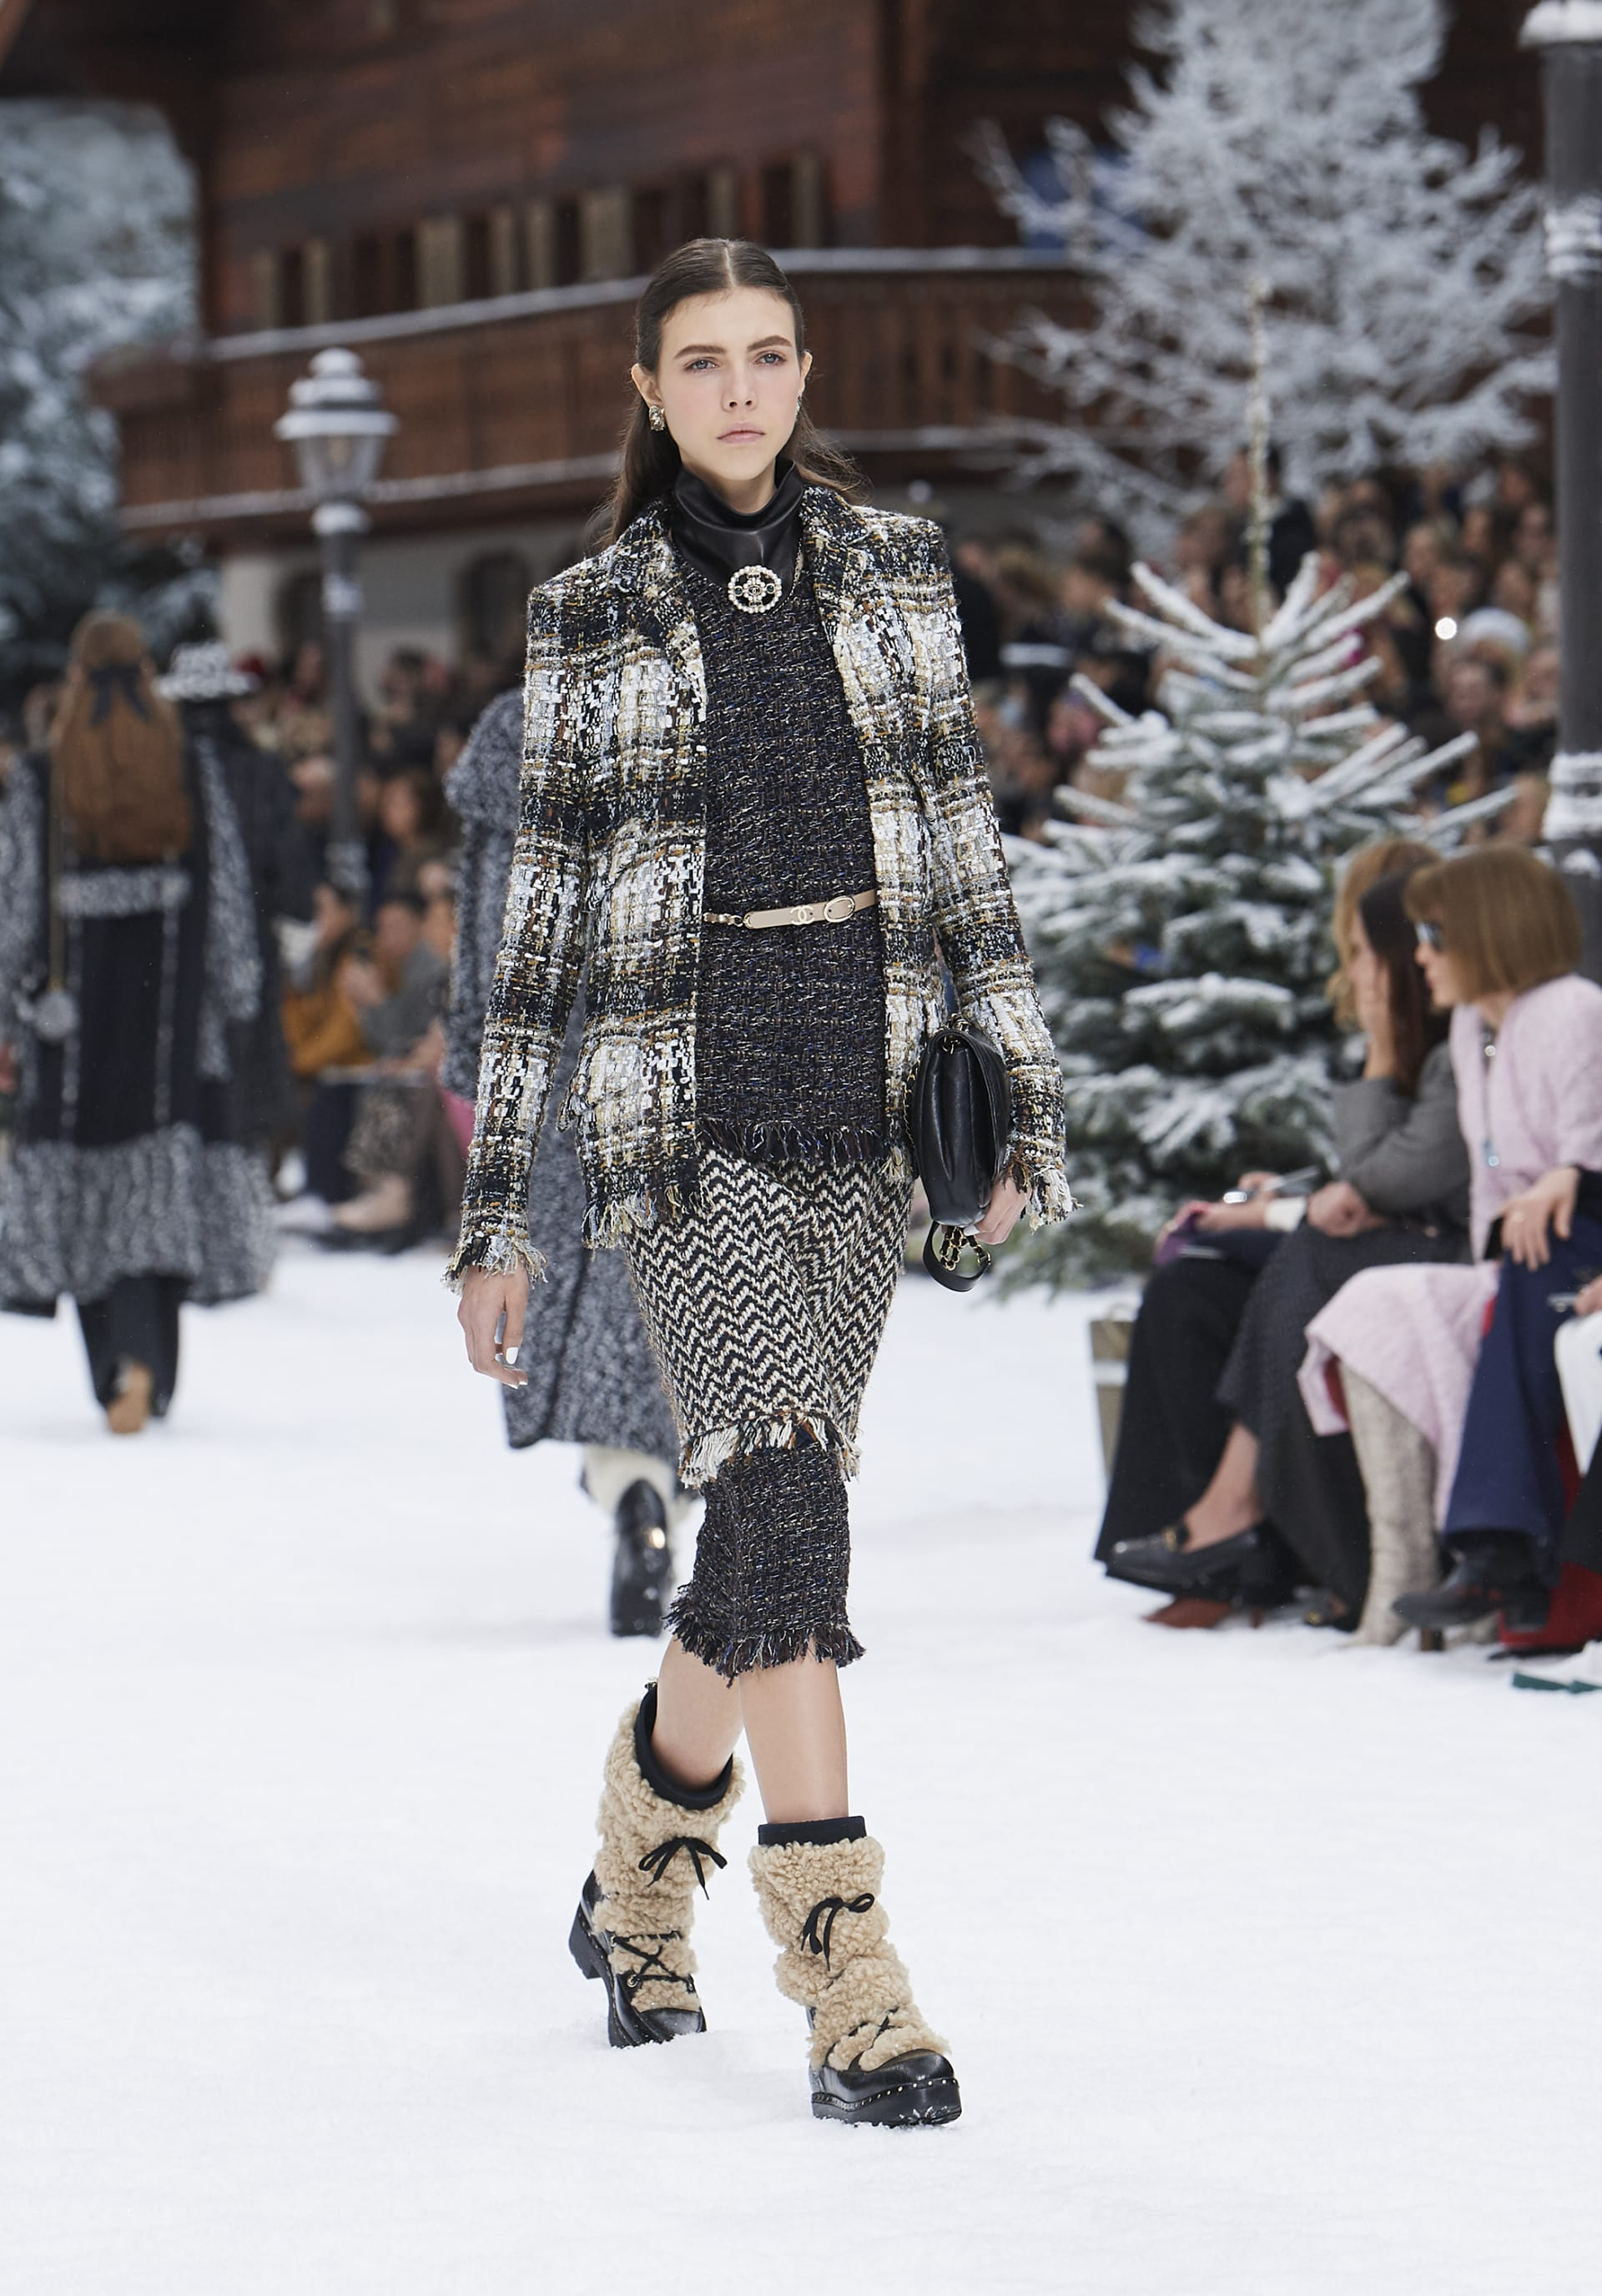 View 1 - Look 19 - Herbst-Winter 2019/20